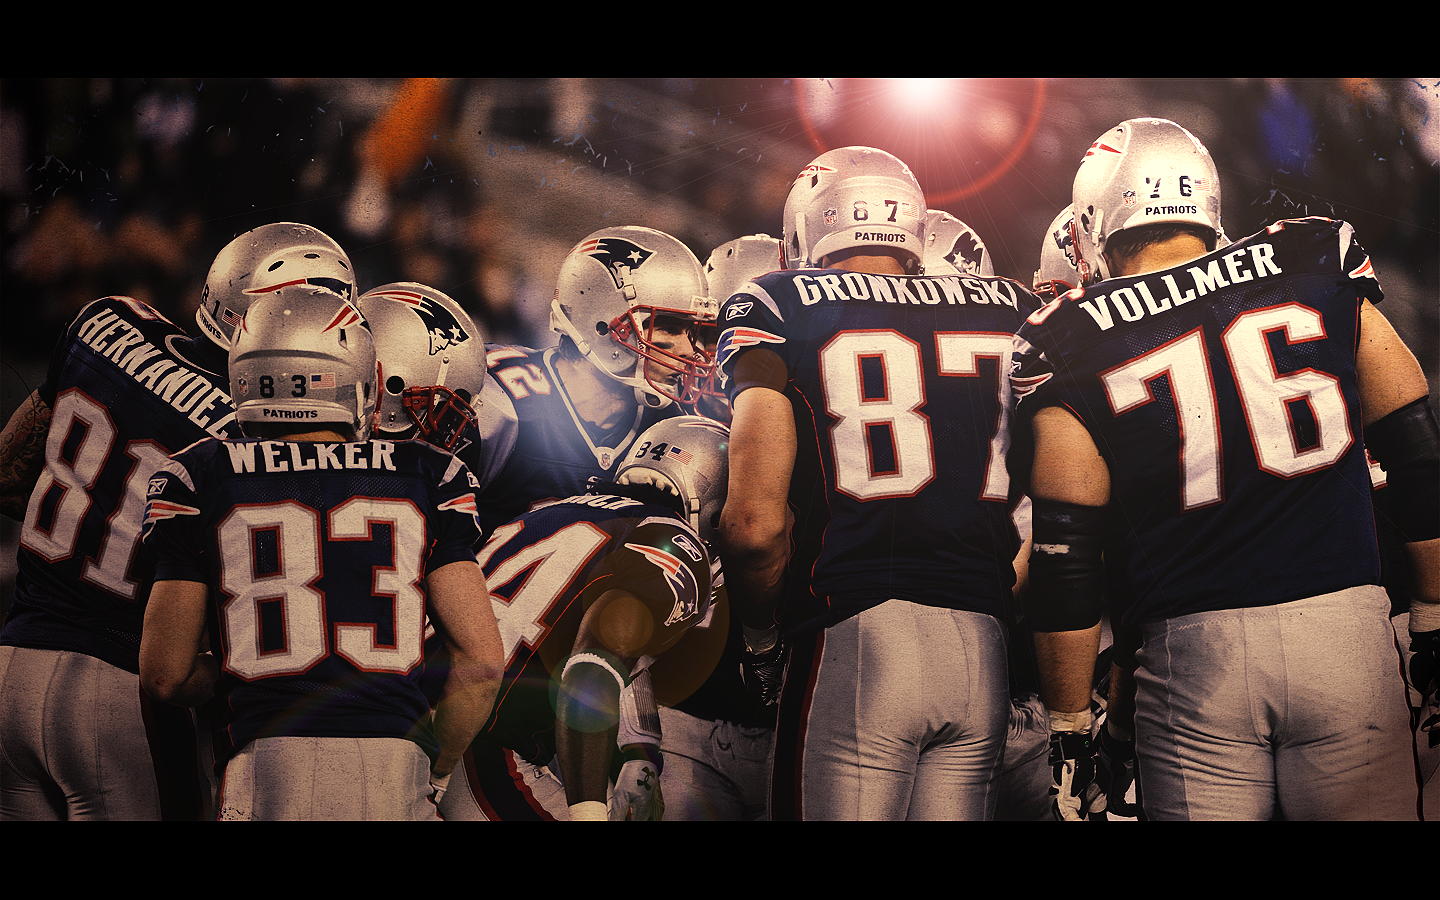 New England Patriots Wallpaper by HottSauce13 on DeviantArt